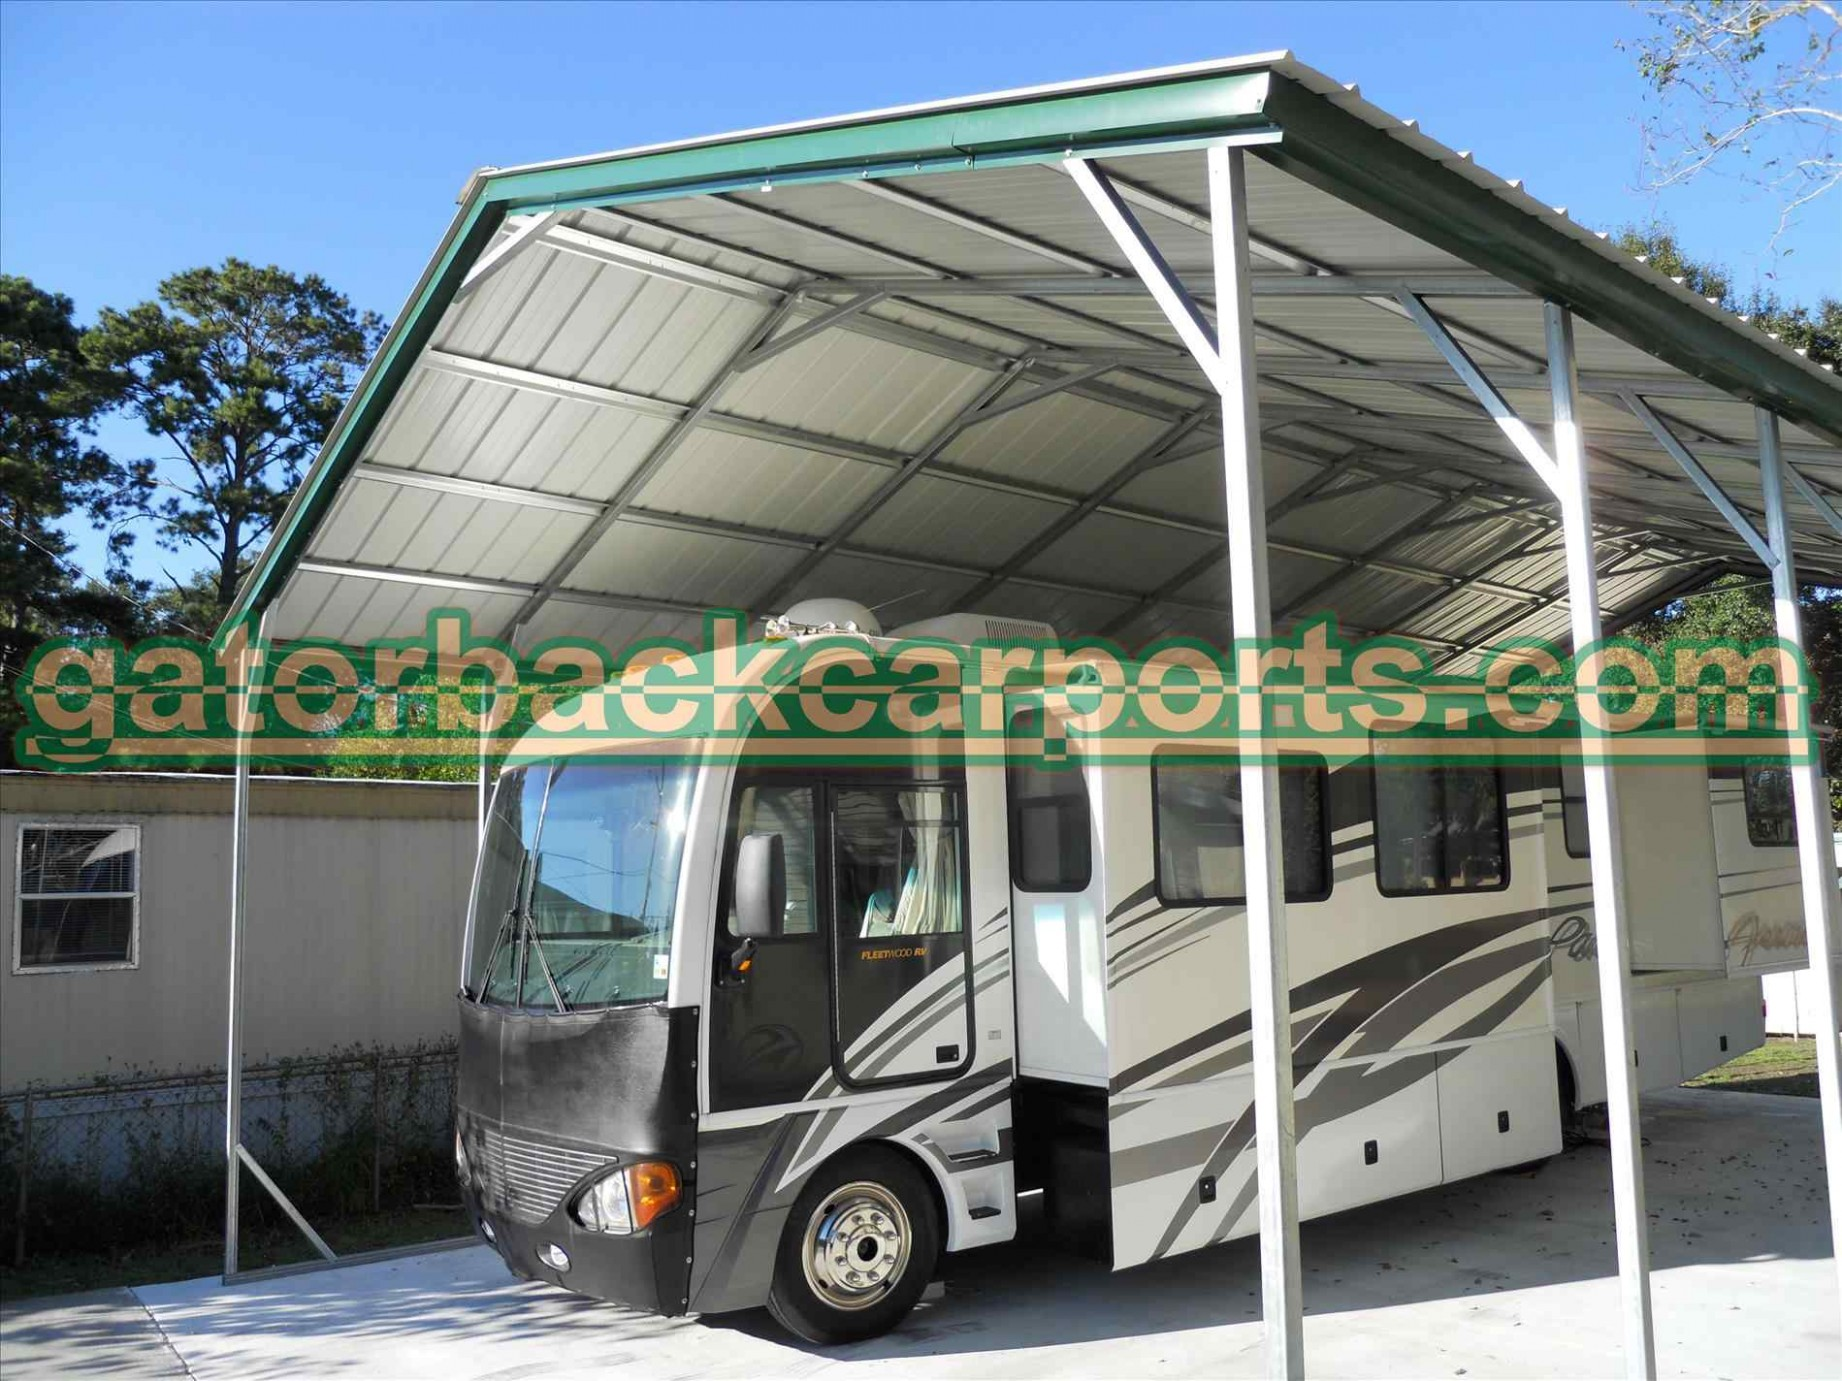 1517565694-author-archives-remicooncom-metal-carports-near-me.jpg